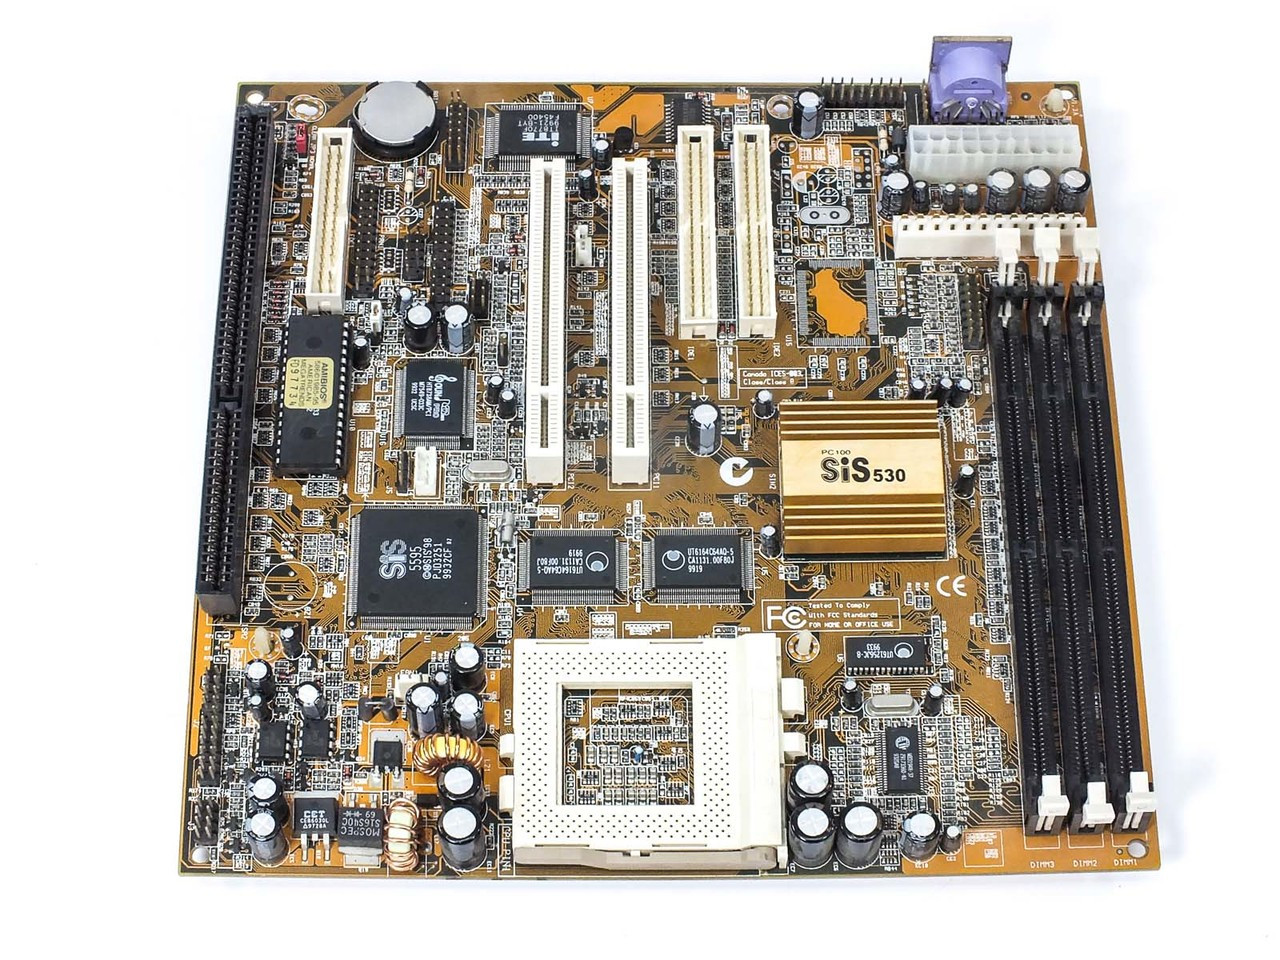 pc-chips-m598lmr-socket-7-motherboard-sis-530-chipset-with-isa-system-board-1.1297__45867.1489936678.jpg